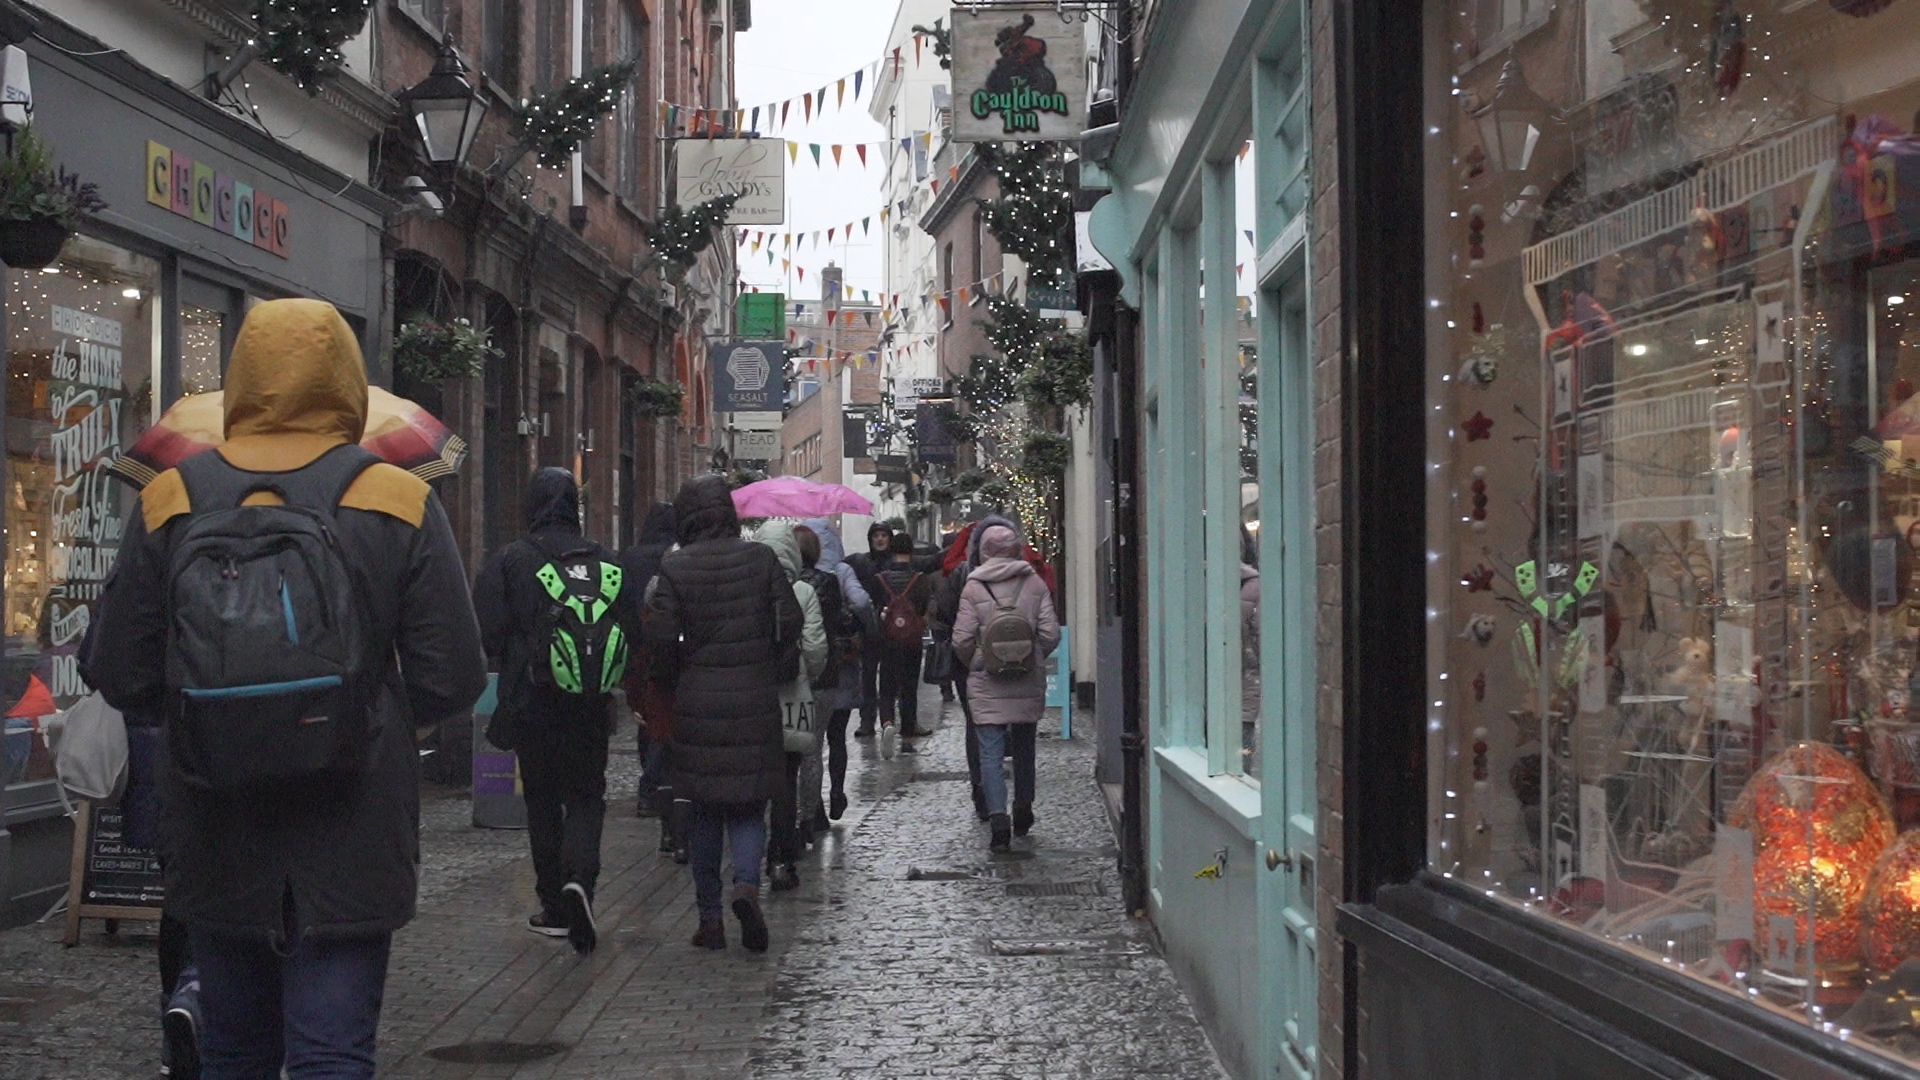 Christmas Shopping ideas from Exeter's independents with the In Exeter Gift Card. Exploring Exeter. Image by @momentstomedia